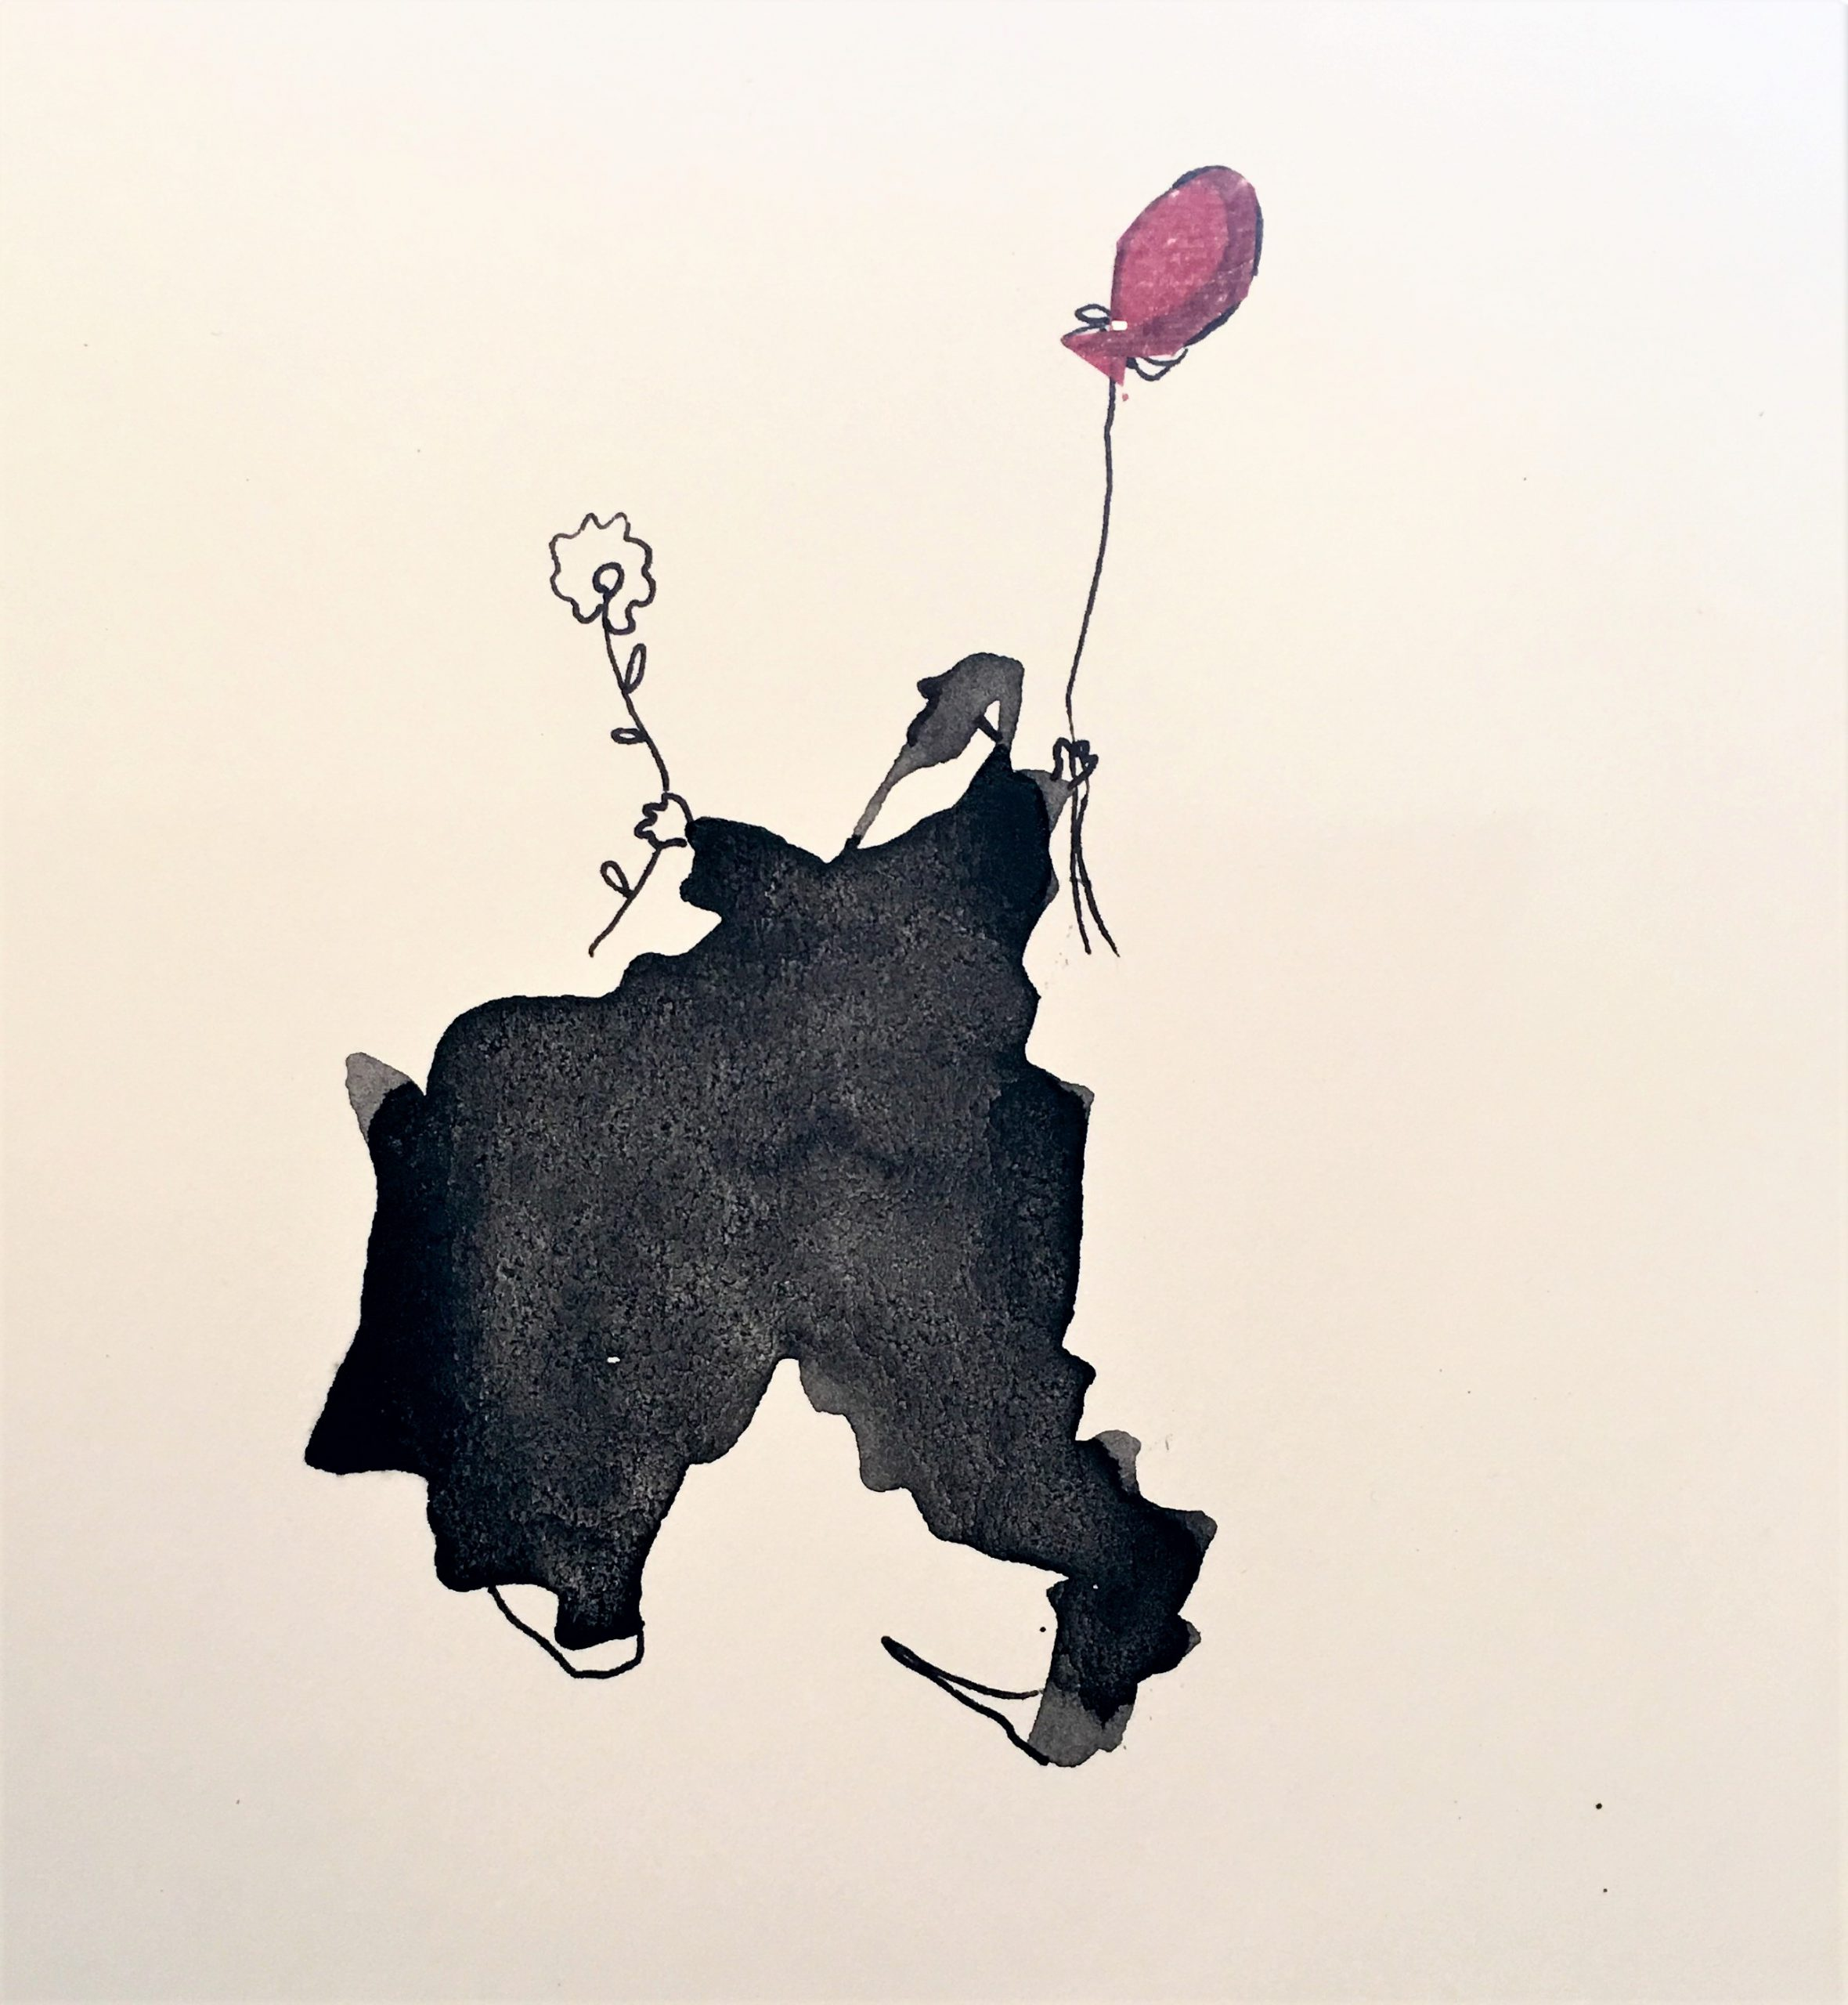 A Red Balloon - Sold